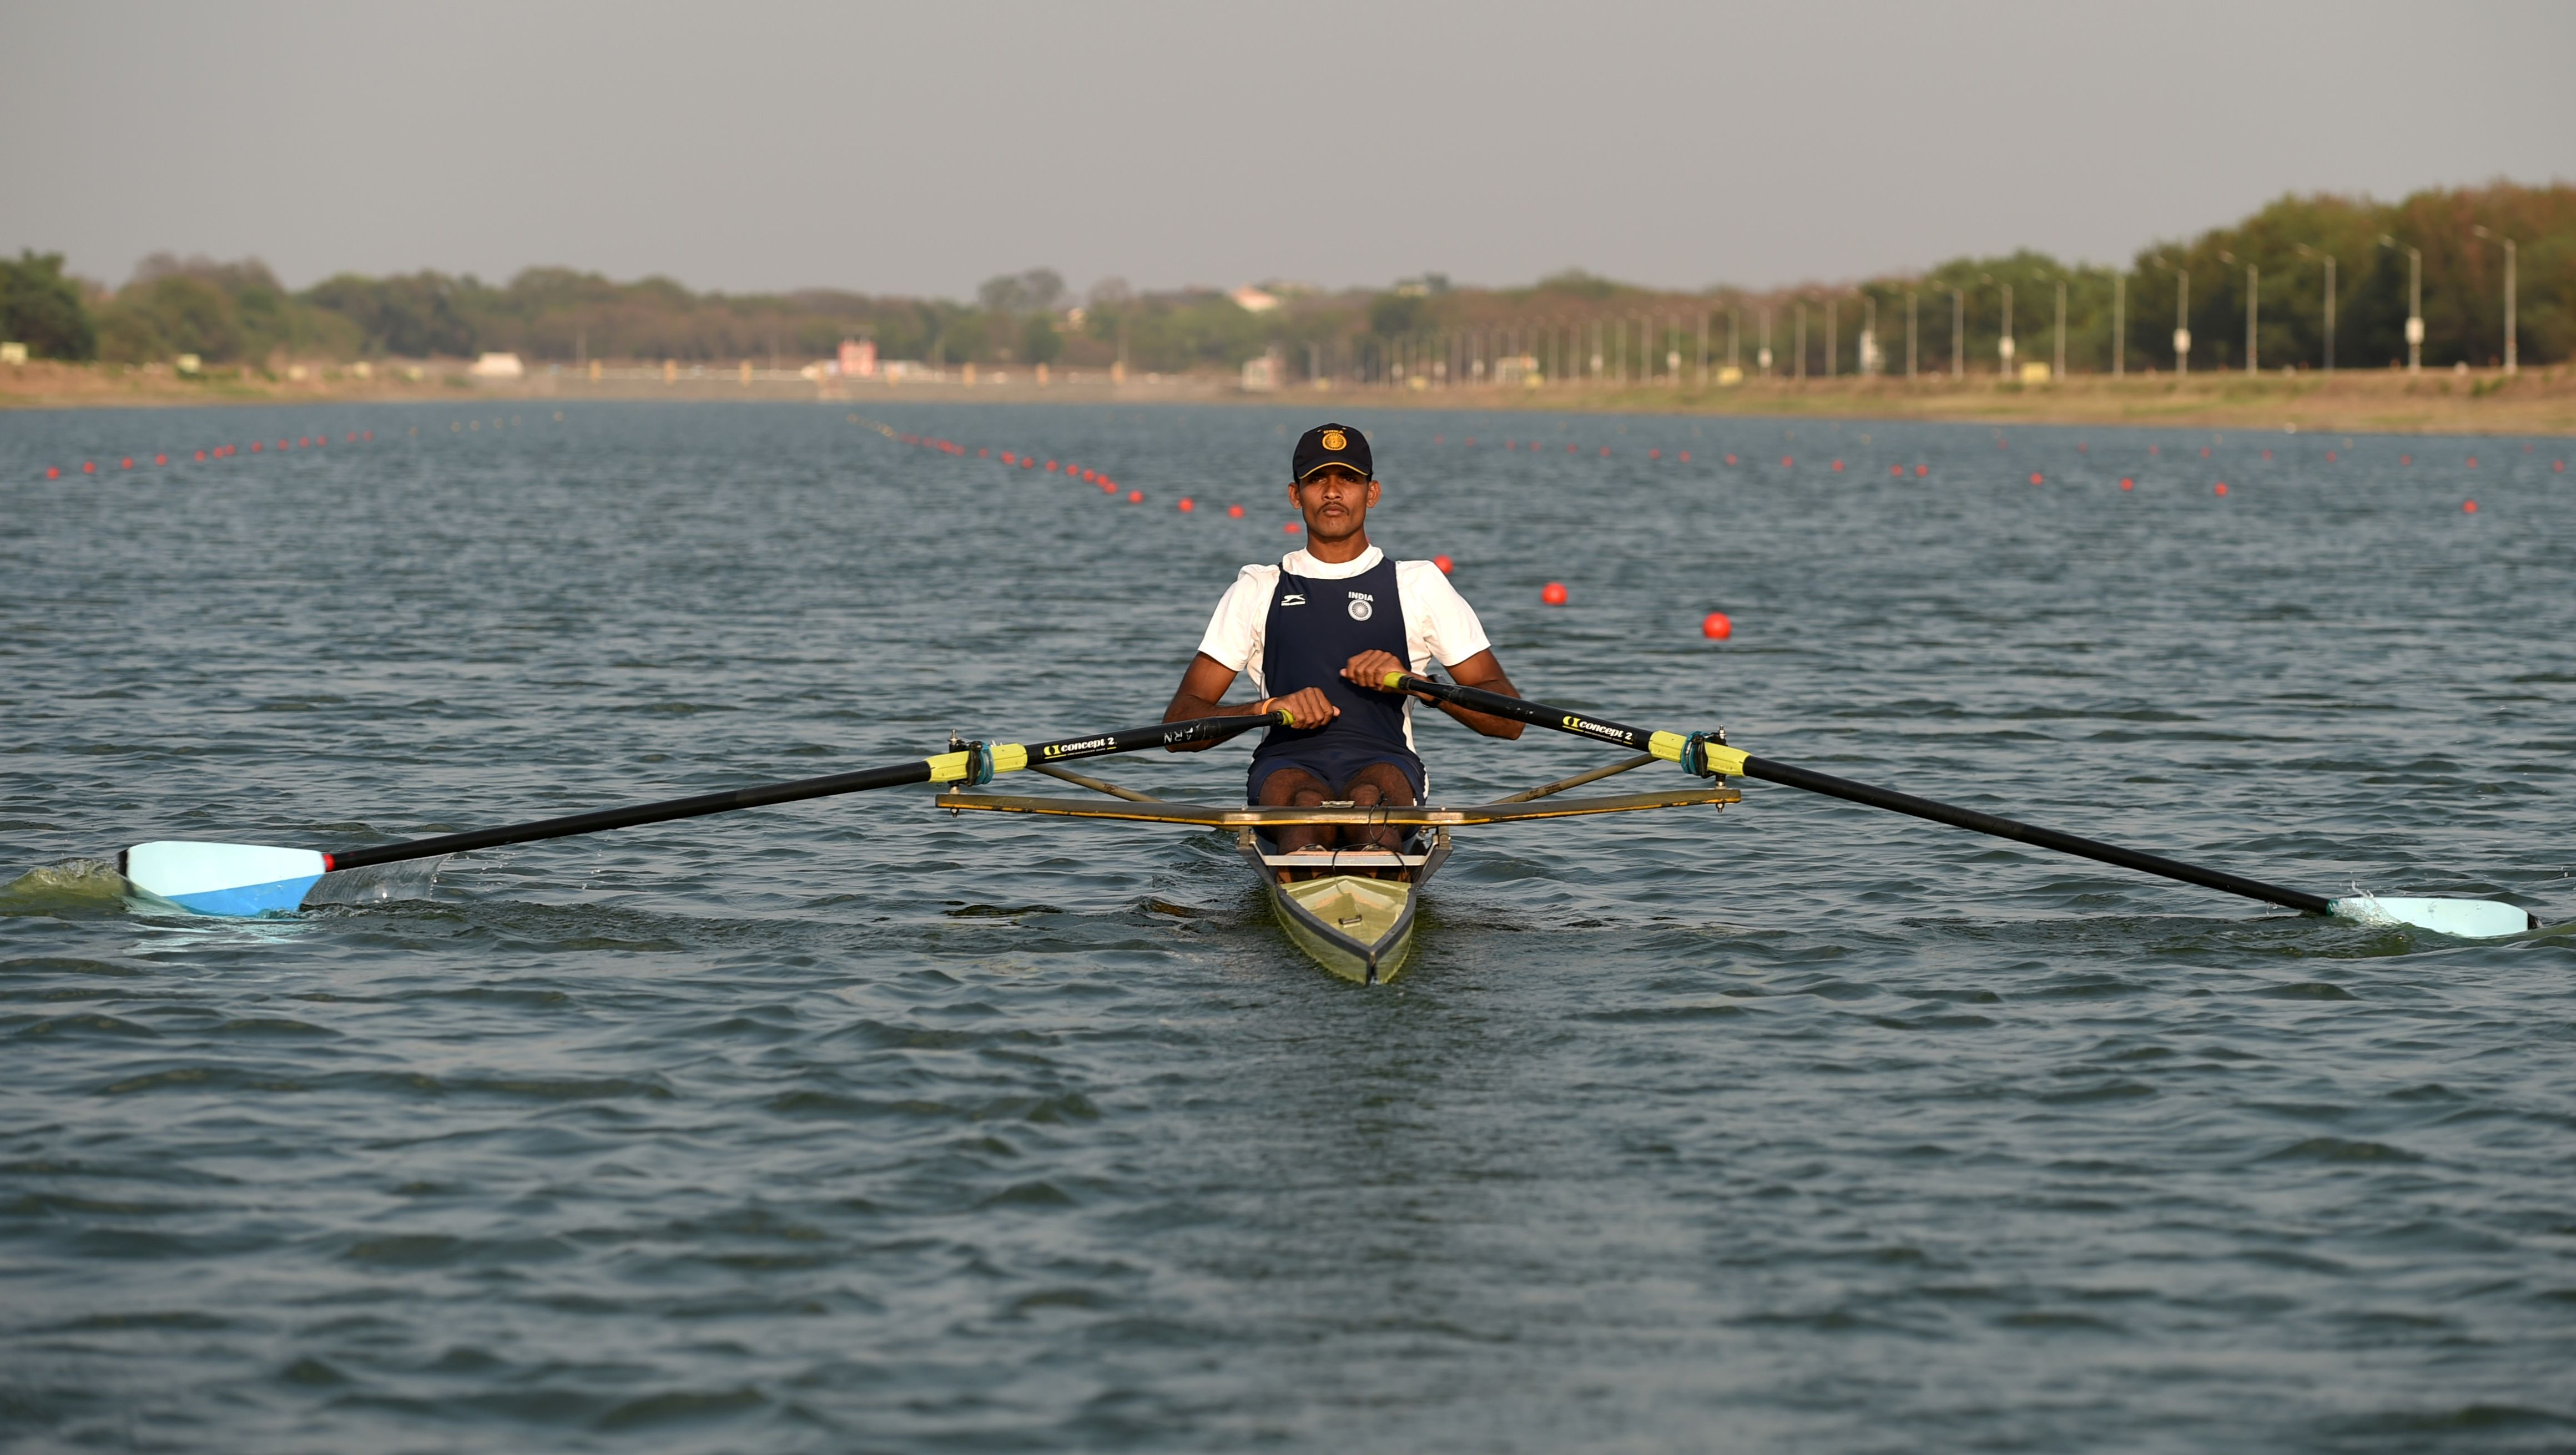 Dattu Bhokanal is among the Indian medal hopefuls in Jakarta.